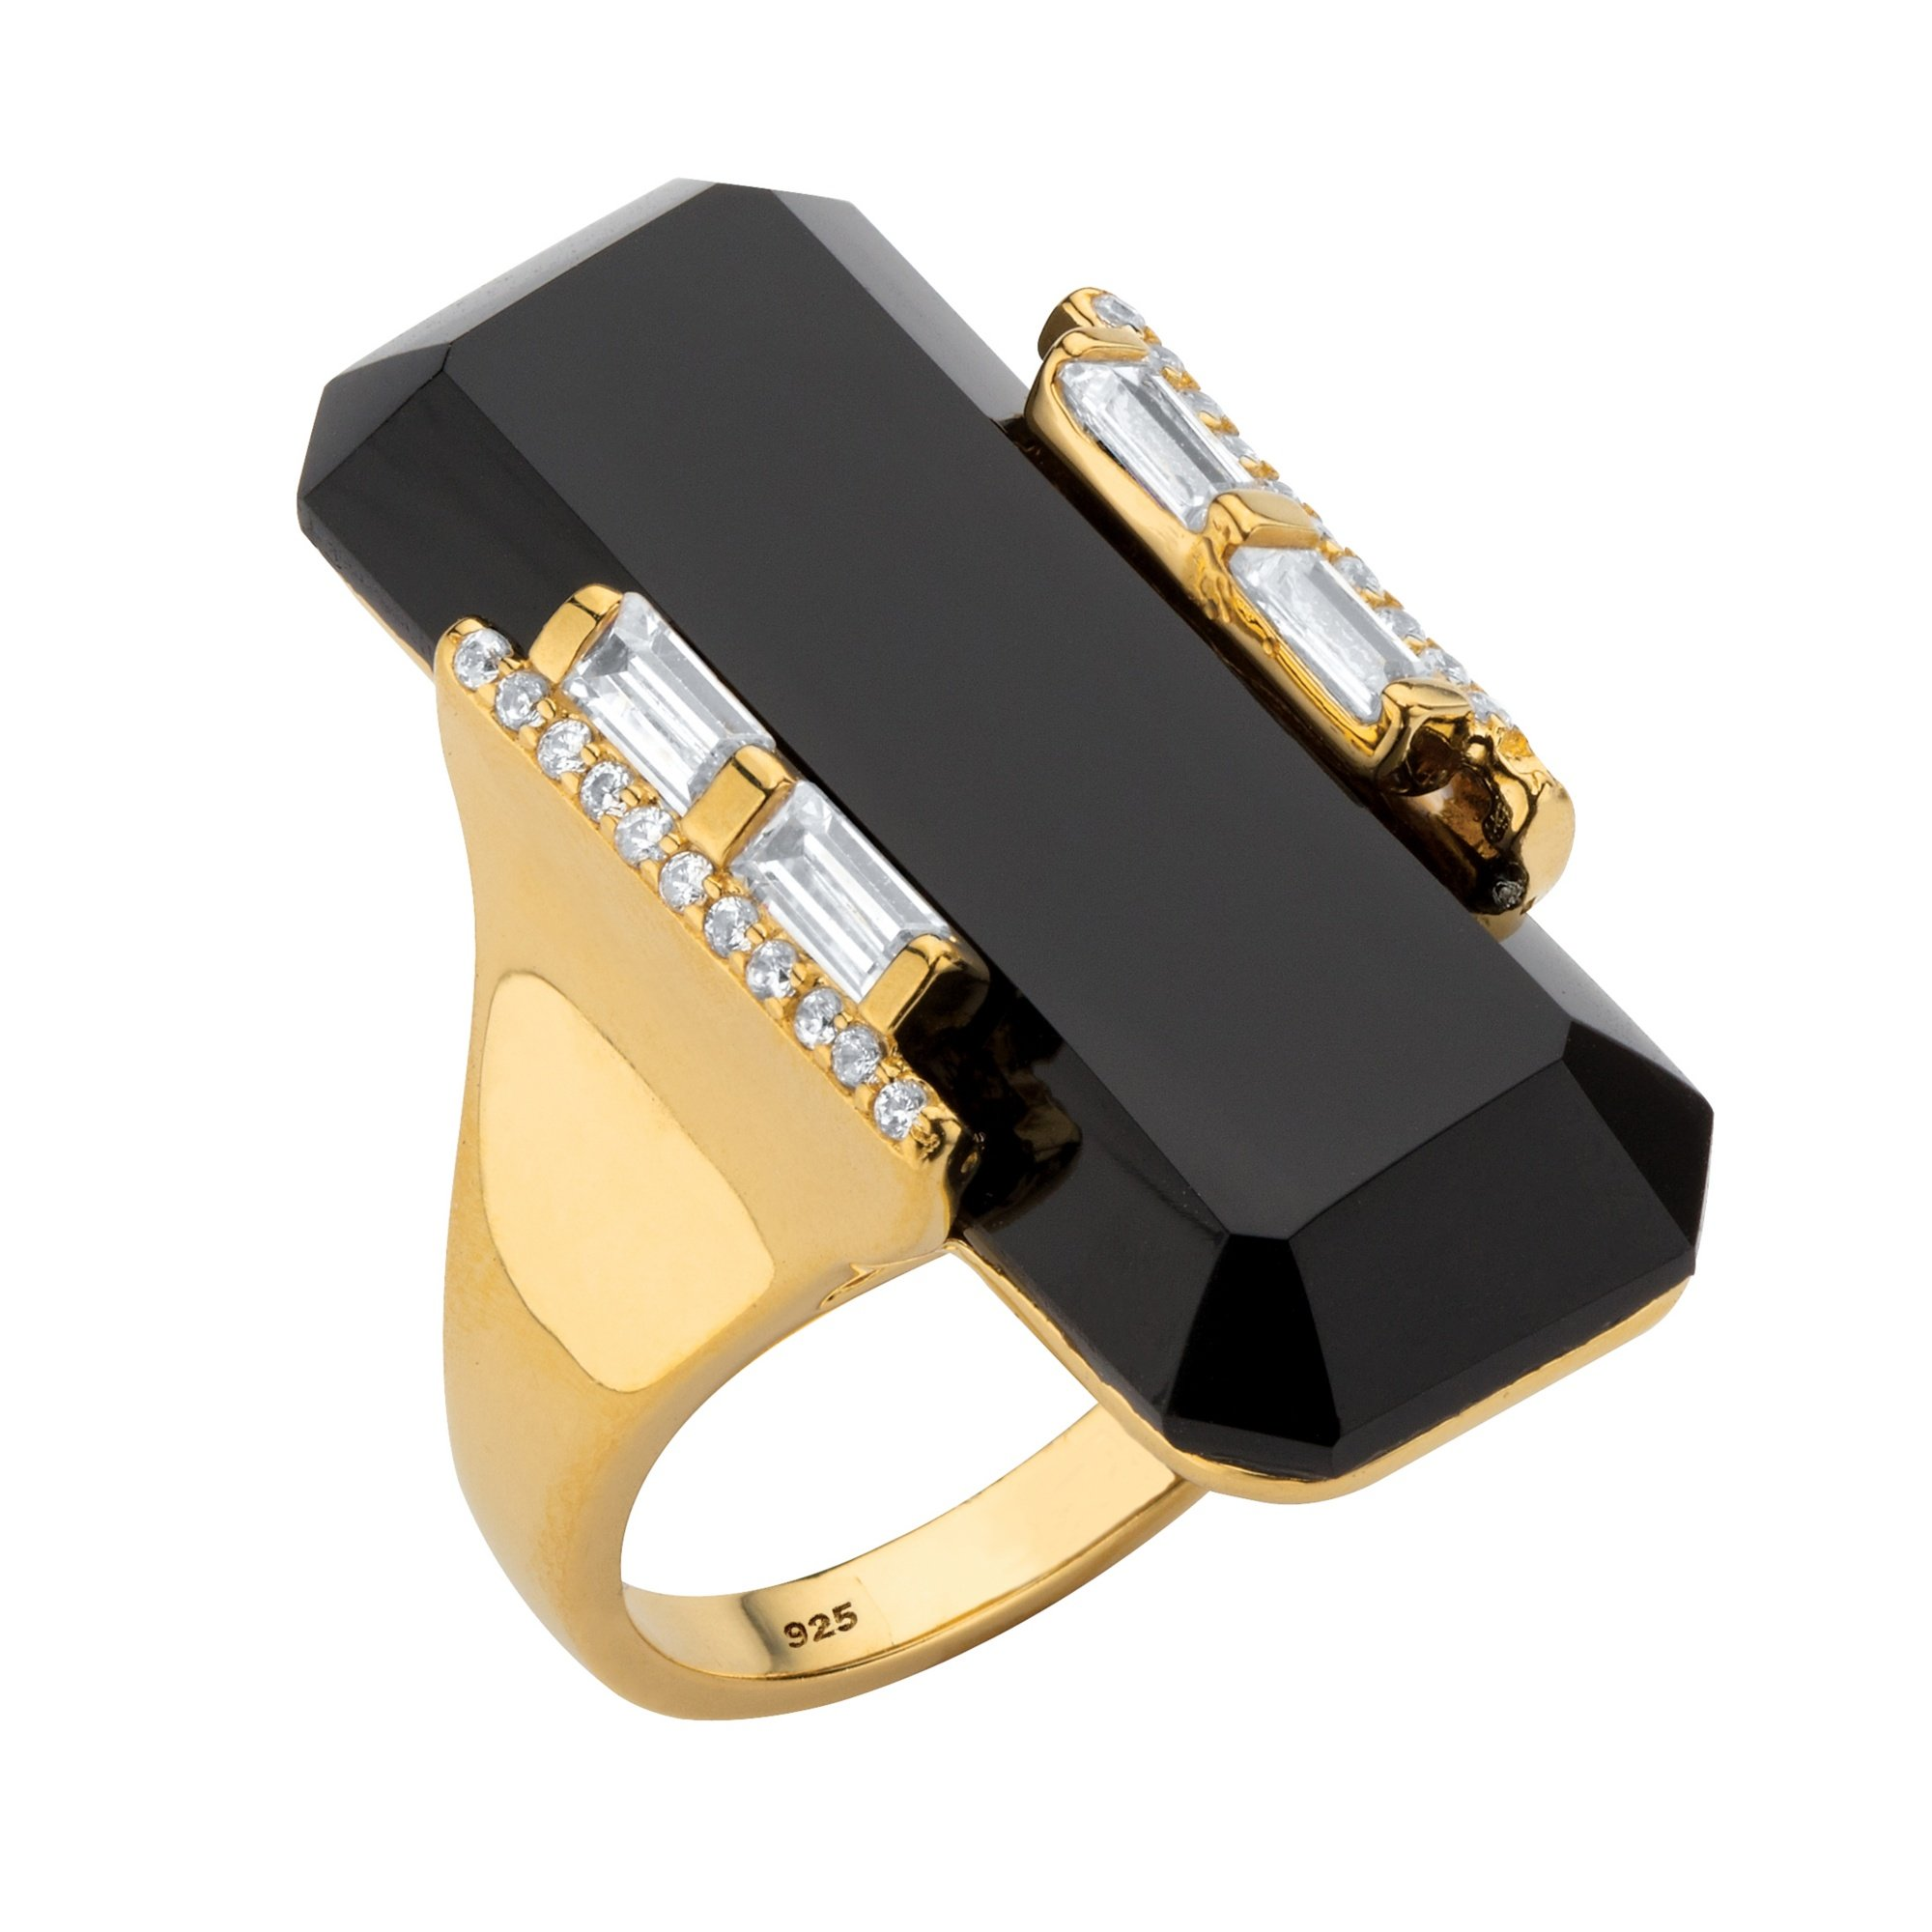 Lux 18K Yellow Gold over Sterling Silver Emerald Cut Natural Black Onyx and Cubic Zirconia Ring